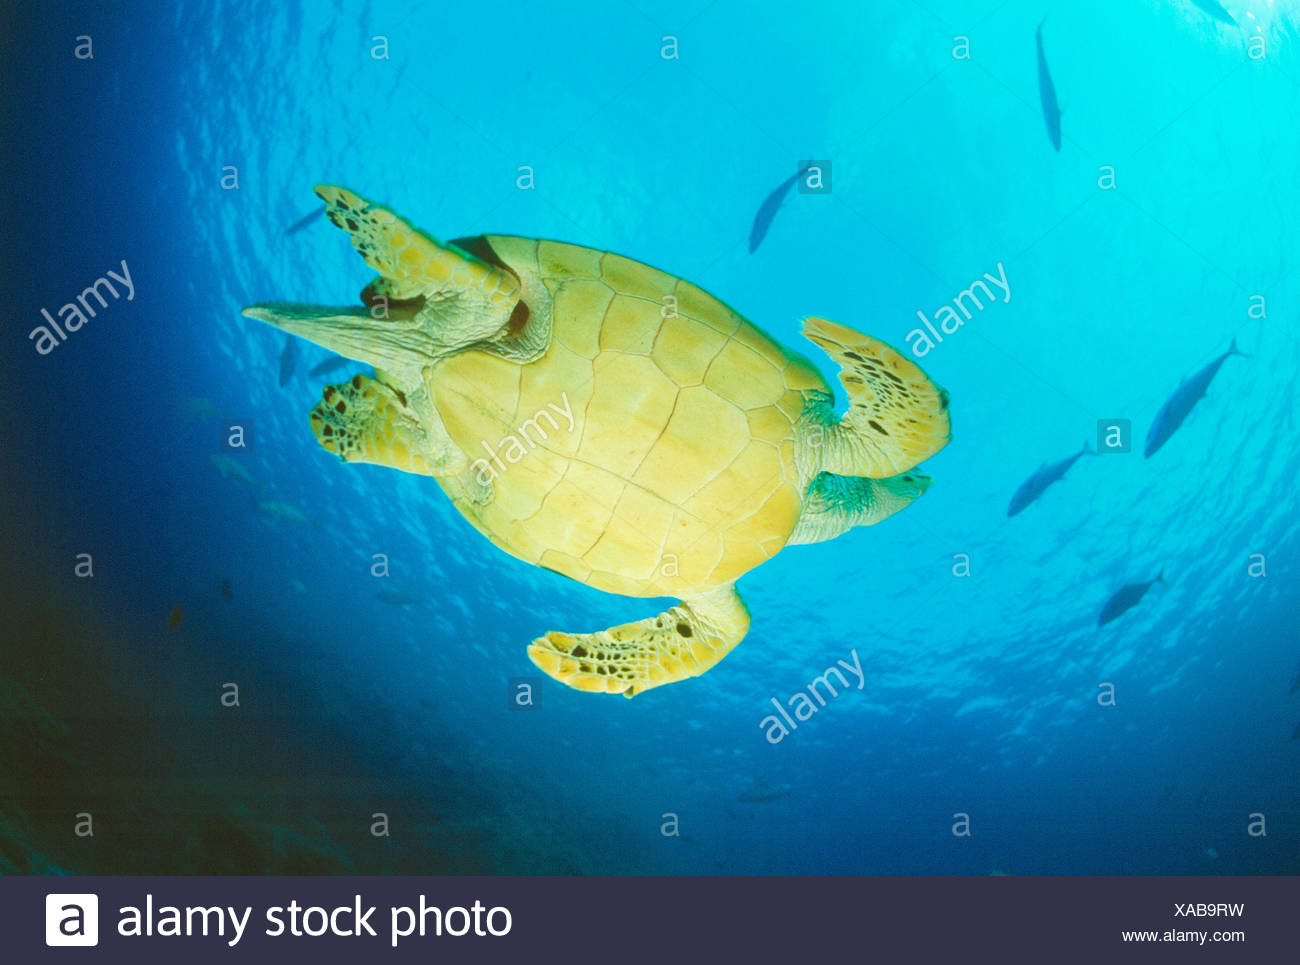 Egypt. Red Sea. View of underside of Hawksbill Turtle swimming underwater. Stock Photo